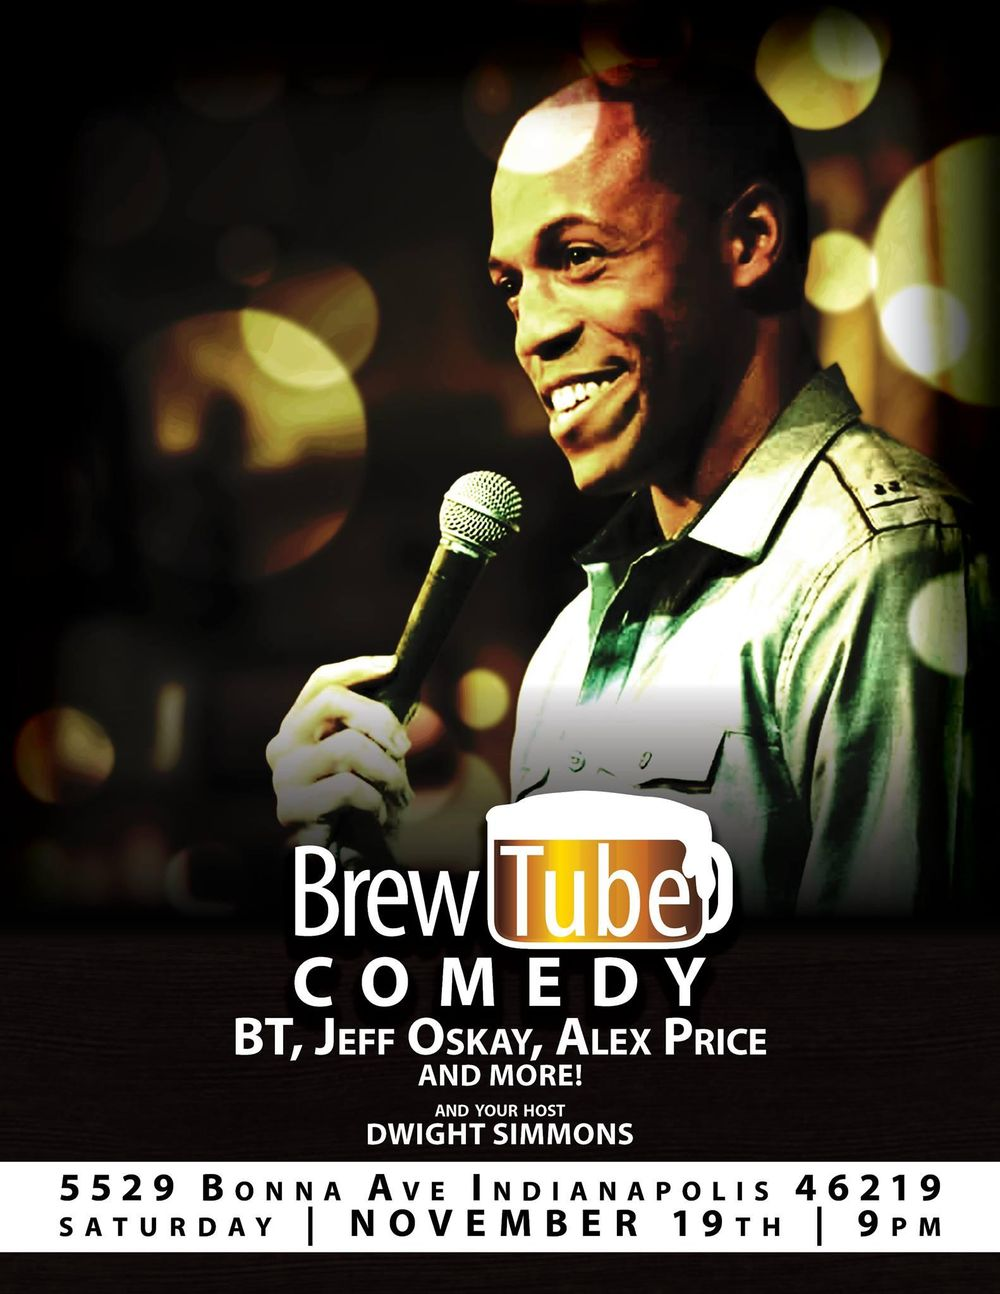 BrewTube Comedy - image 1 - student project